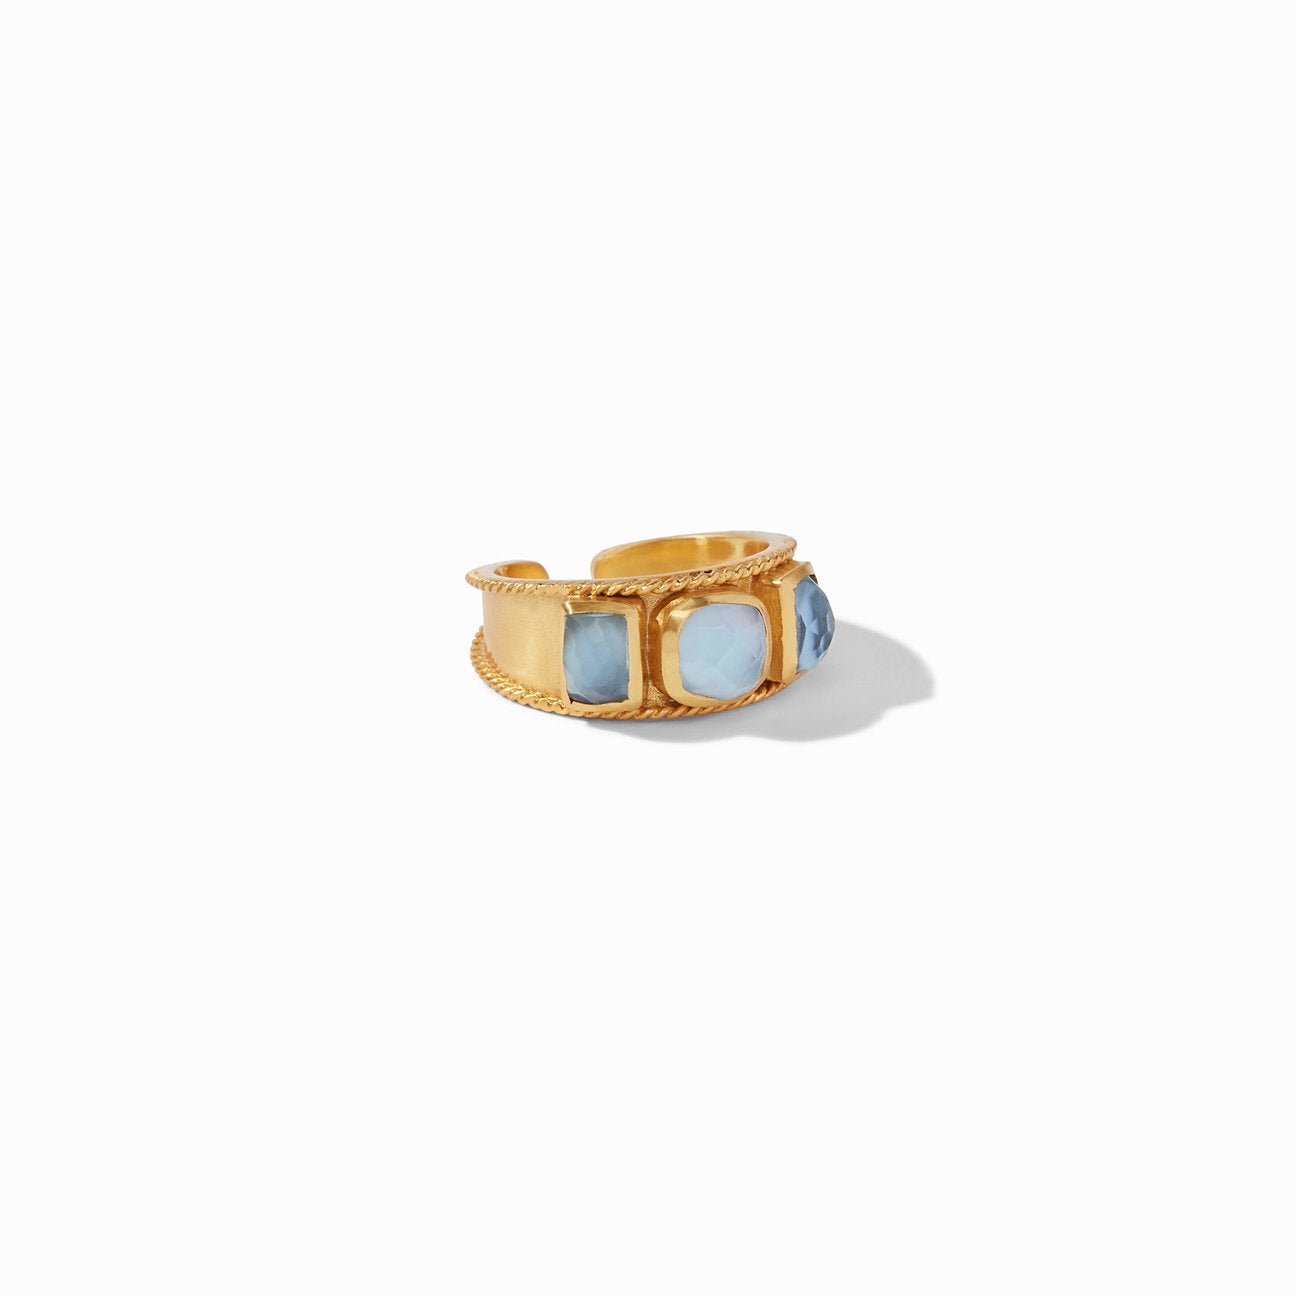 Savoy Ring Gold Iridescent Chalcedony Blue Size 8/9